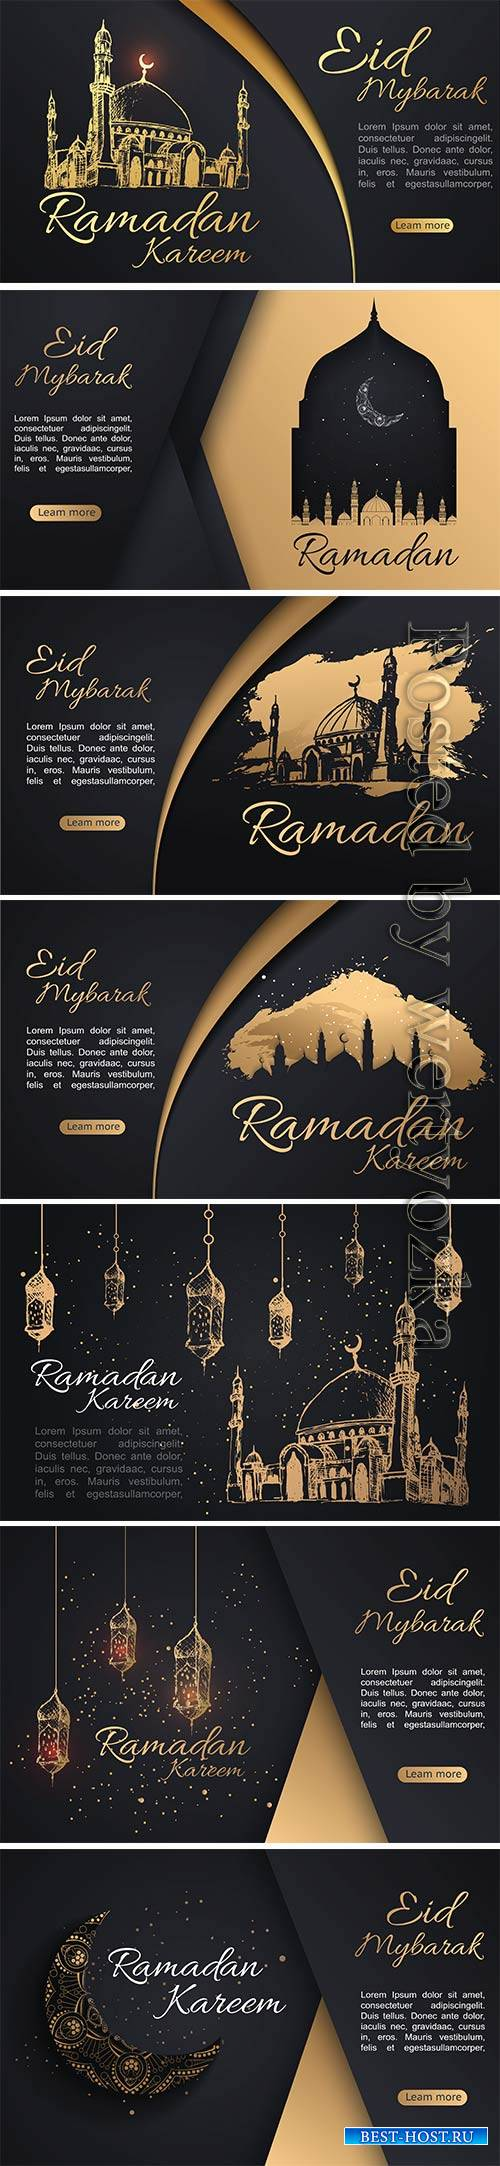 Ramadan Kareem islamic greeting watercolor sketch background